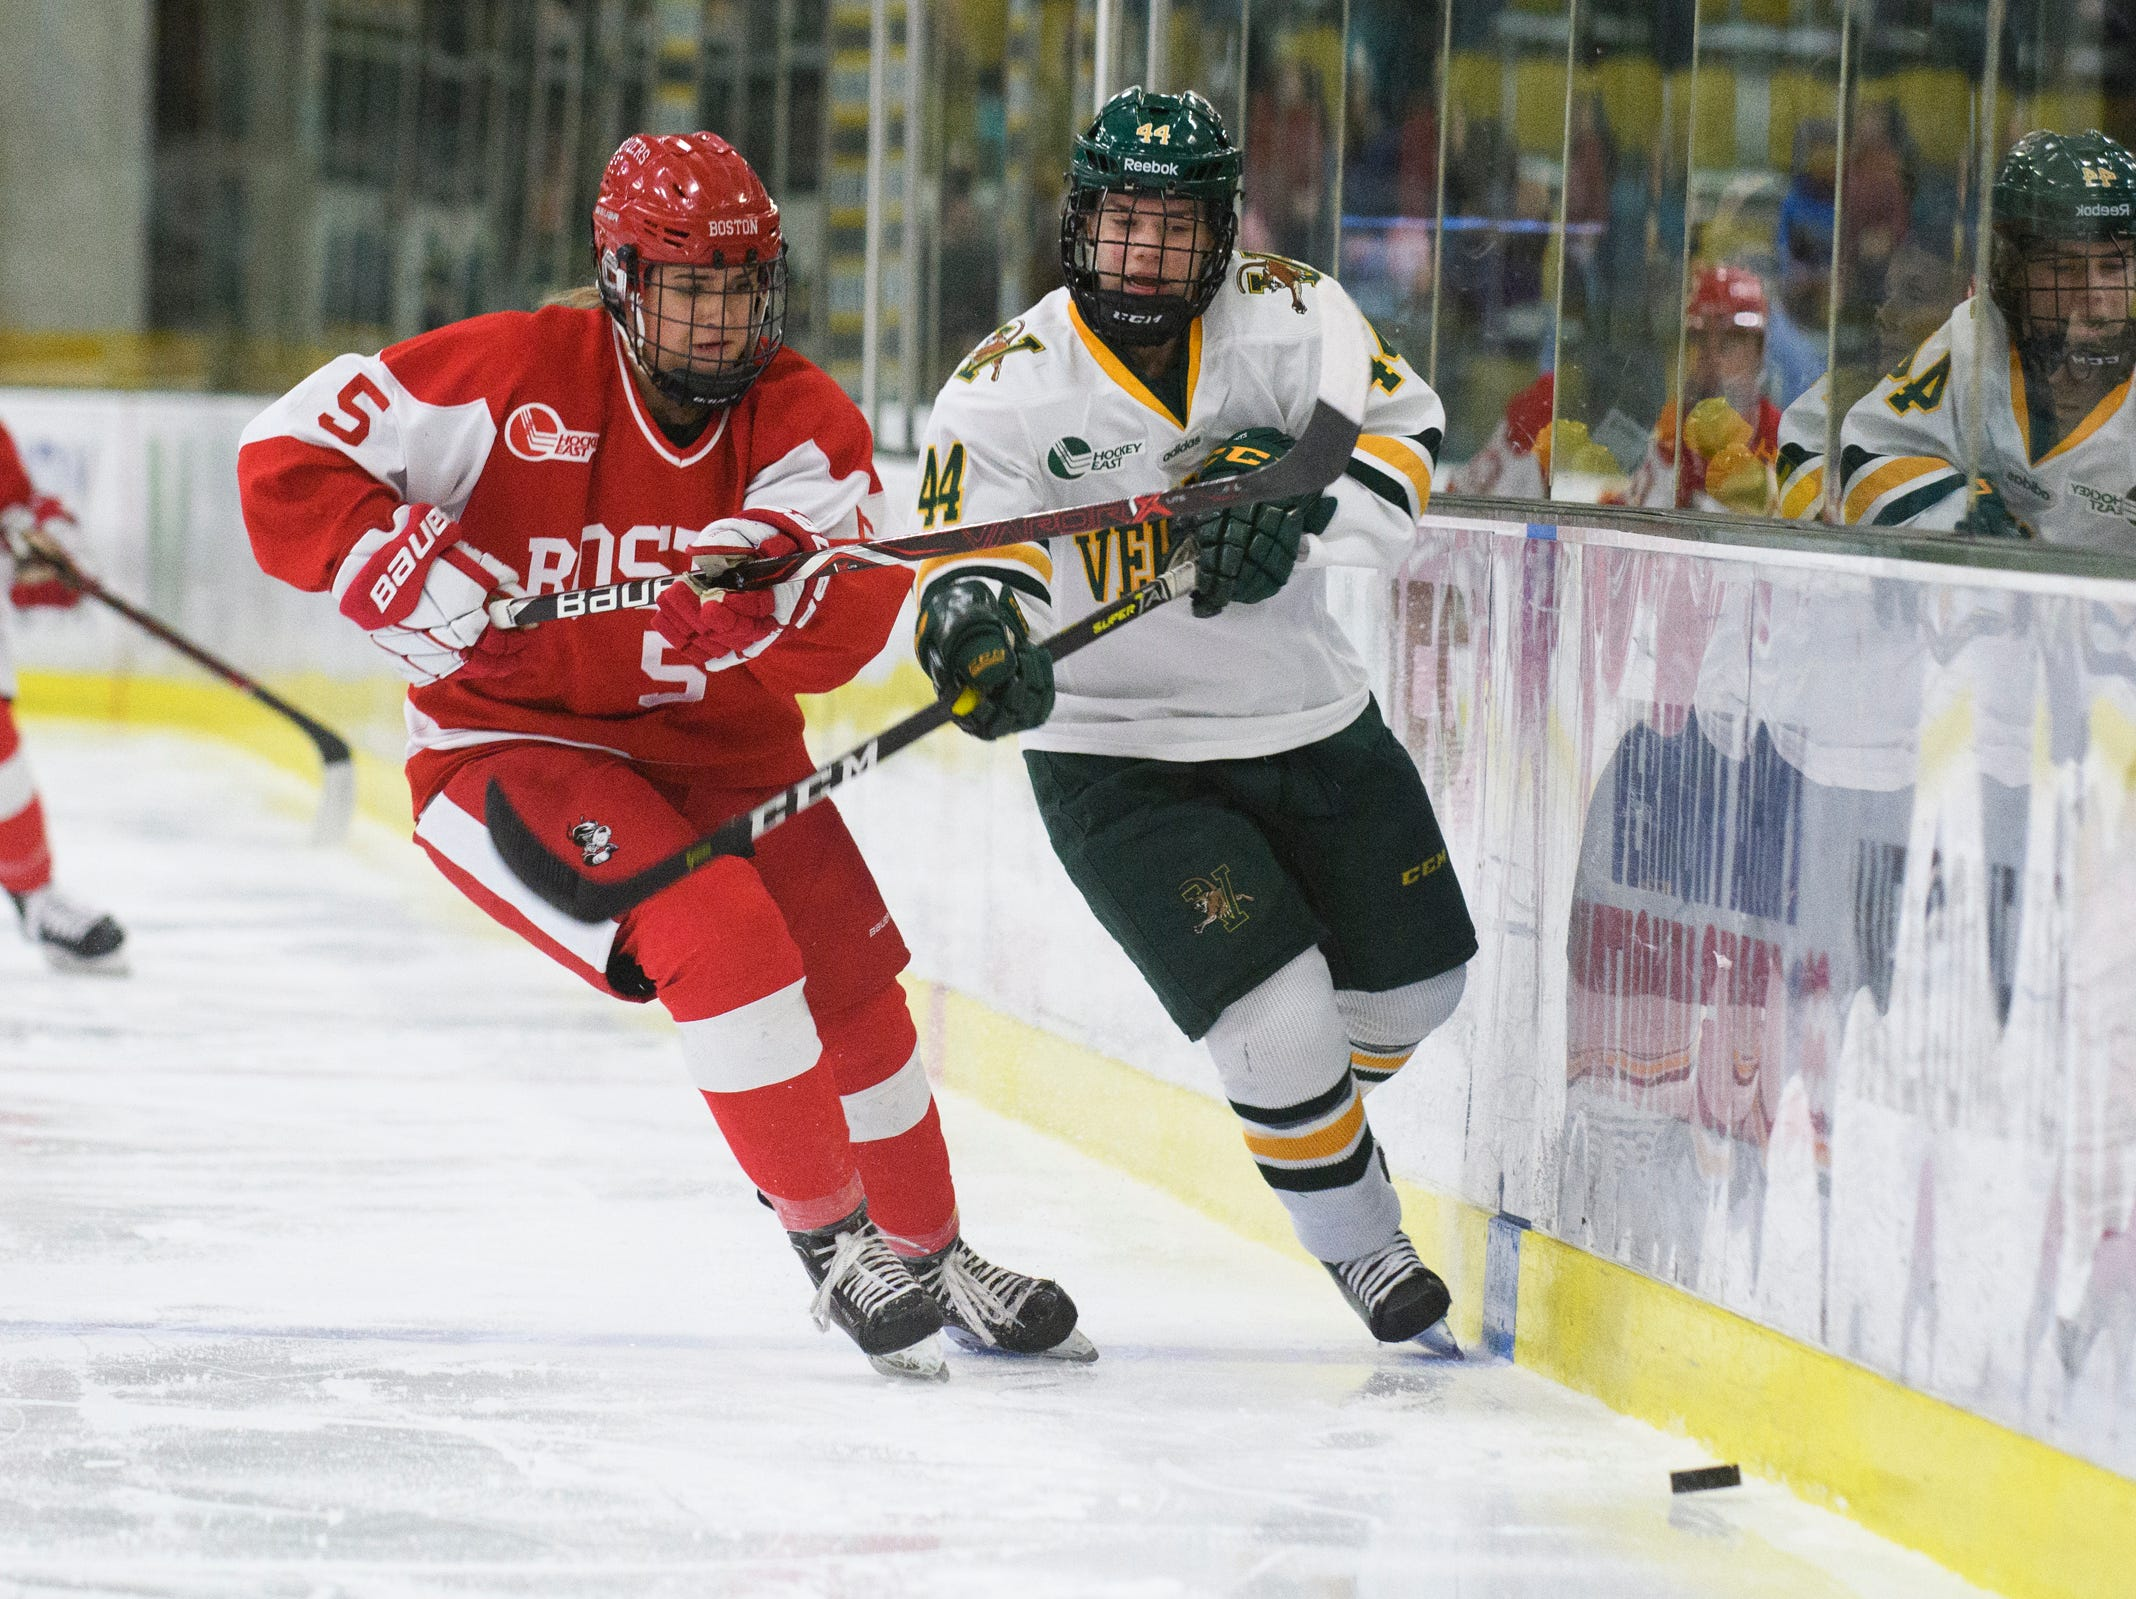 Vermont's Anna Erickson (44) and Boston's Courtney Correia (5) battle for the puck during the women's hockey game between the Boston Terriers and the Vermont Catamounts at Gutterson Field House on Friday night February 1, 2019 in Burlington, Vermont.